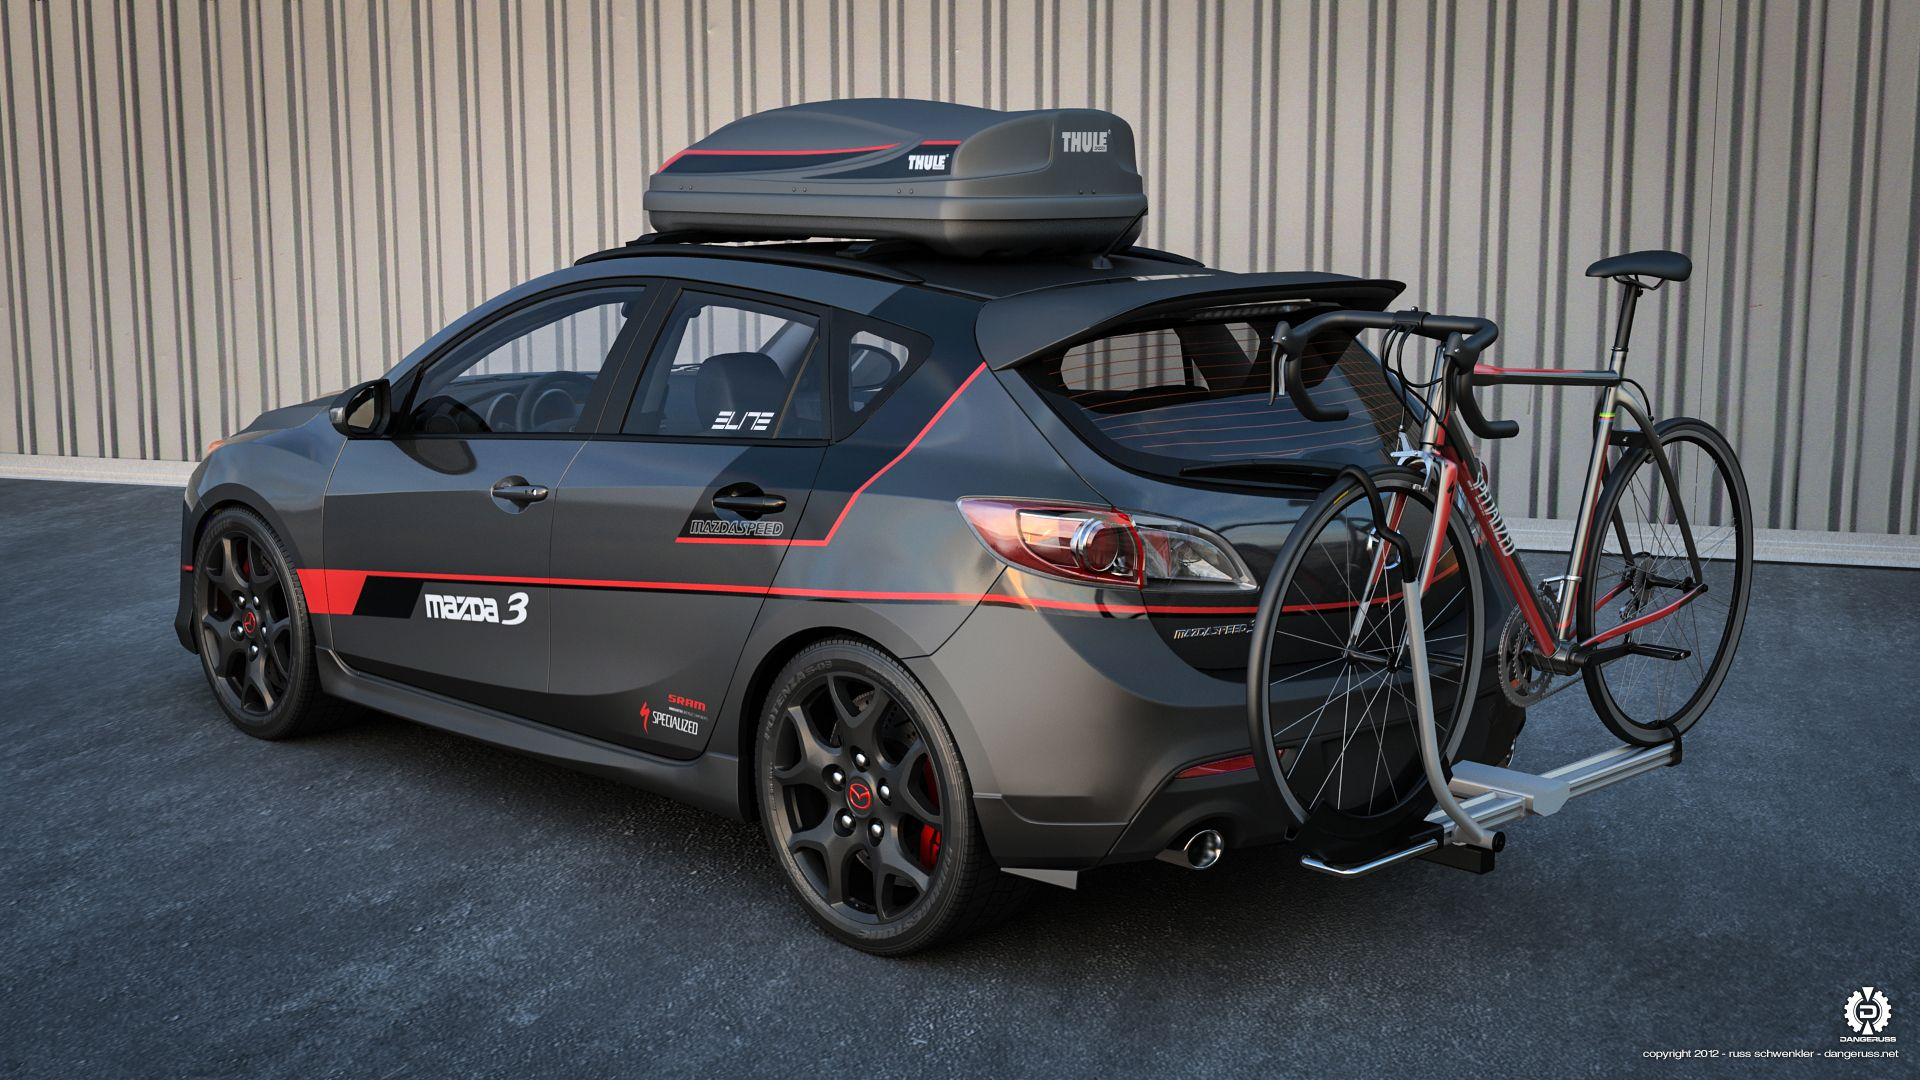 Mazdaspeed 3 Ready For The Unexpected Driven Mazda Cars Mazda